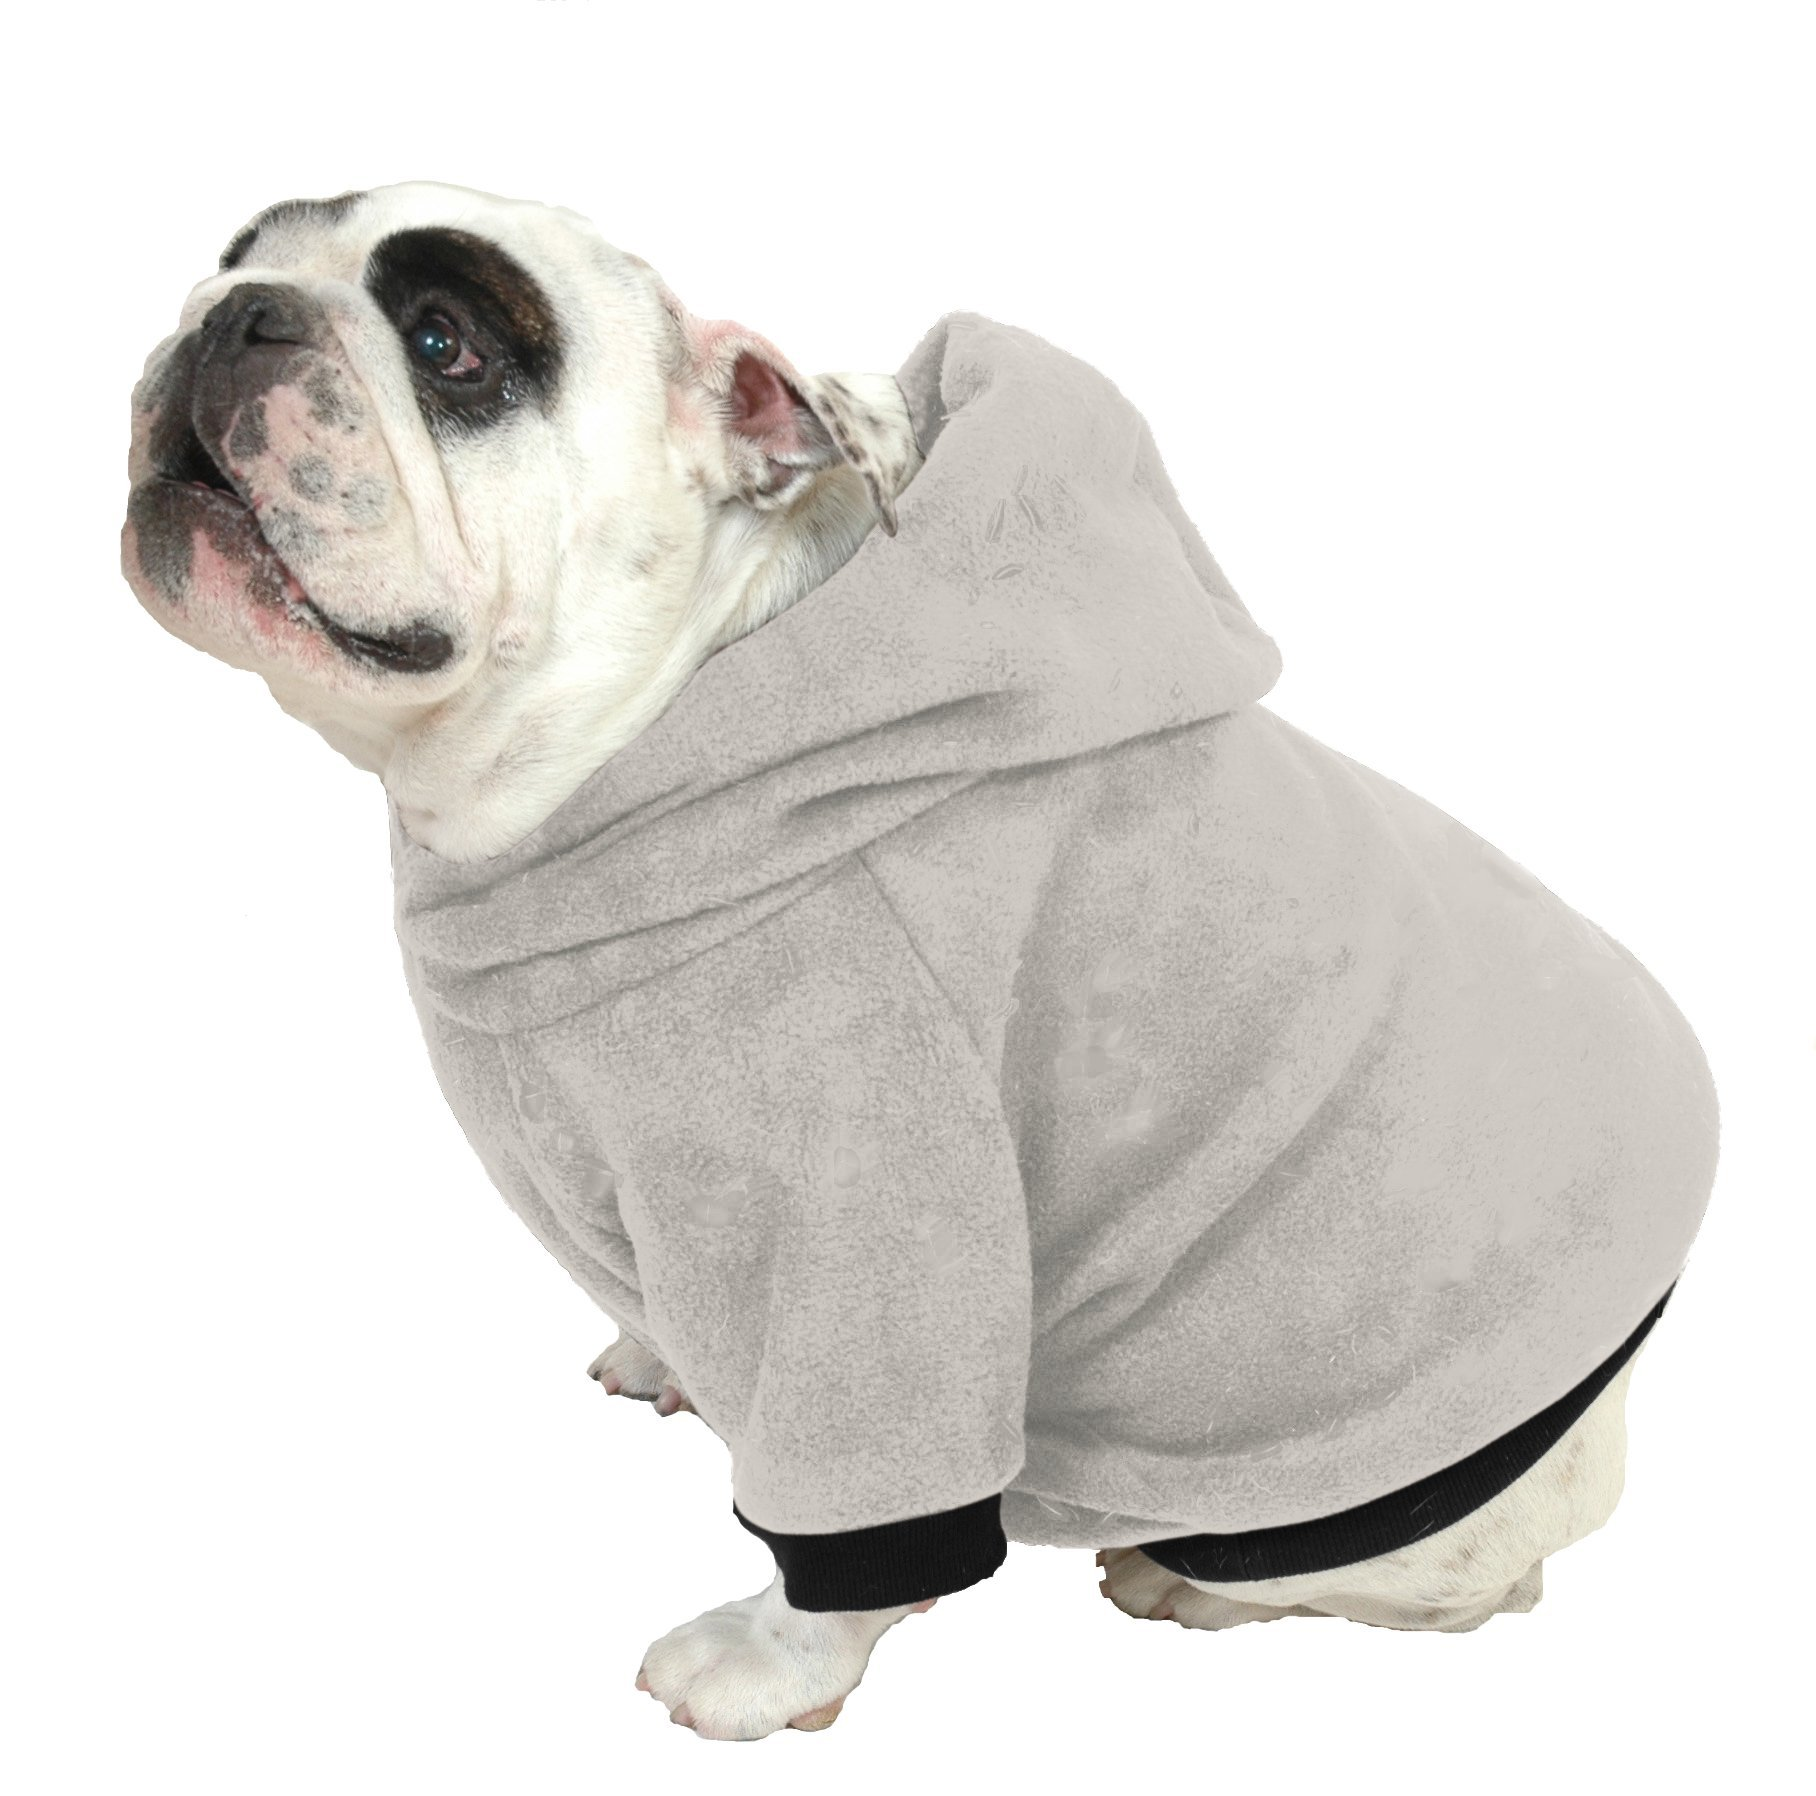 Plus Size Pups English Bulldog Dog Sweatshirts, Beefy and Bigger Than Beefy with More Than 20 Fleece Patterns to Choose